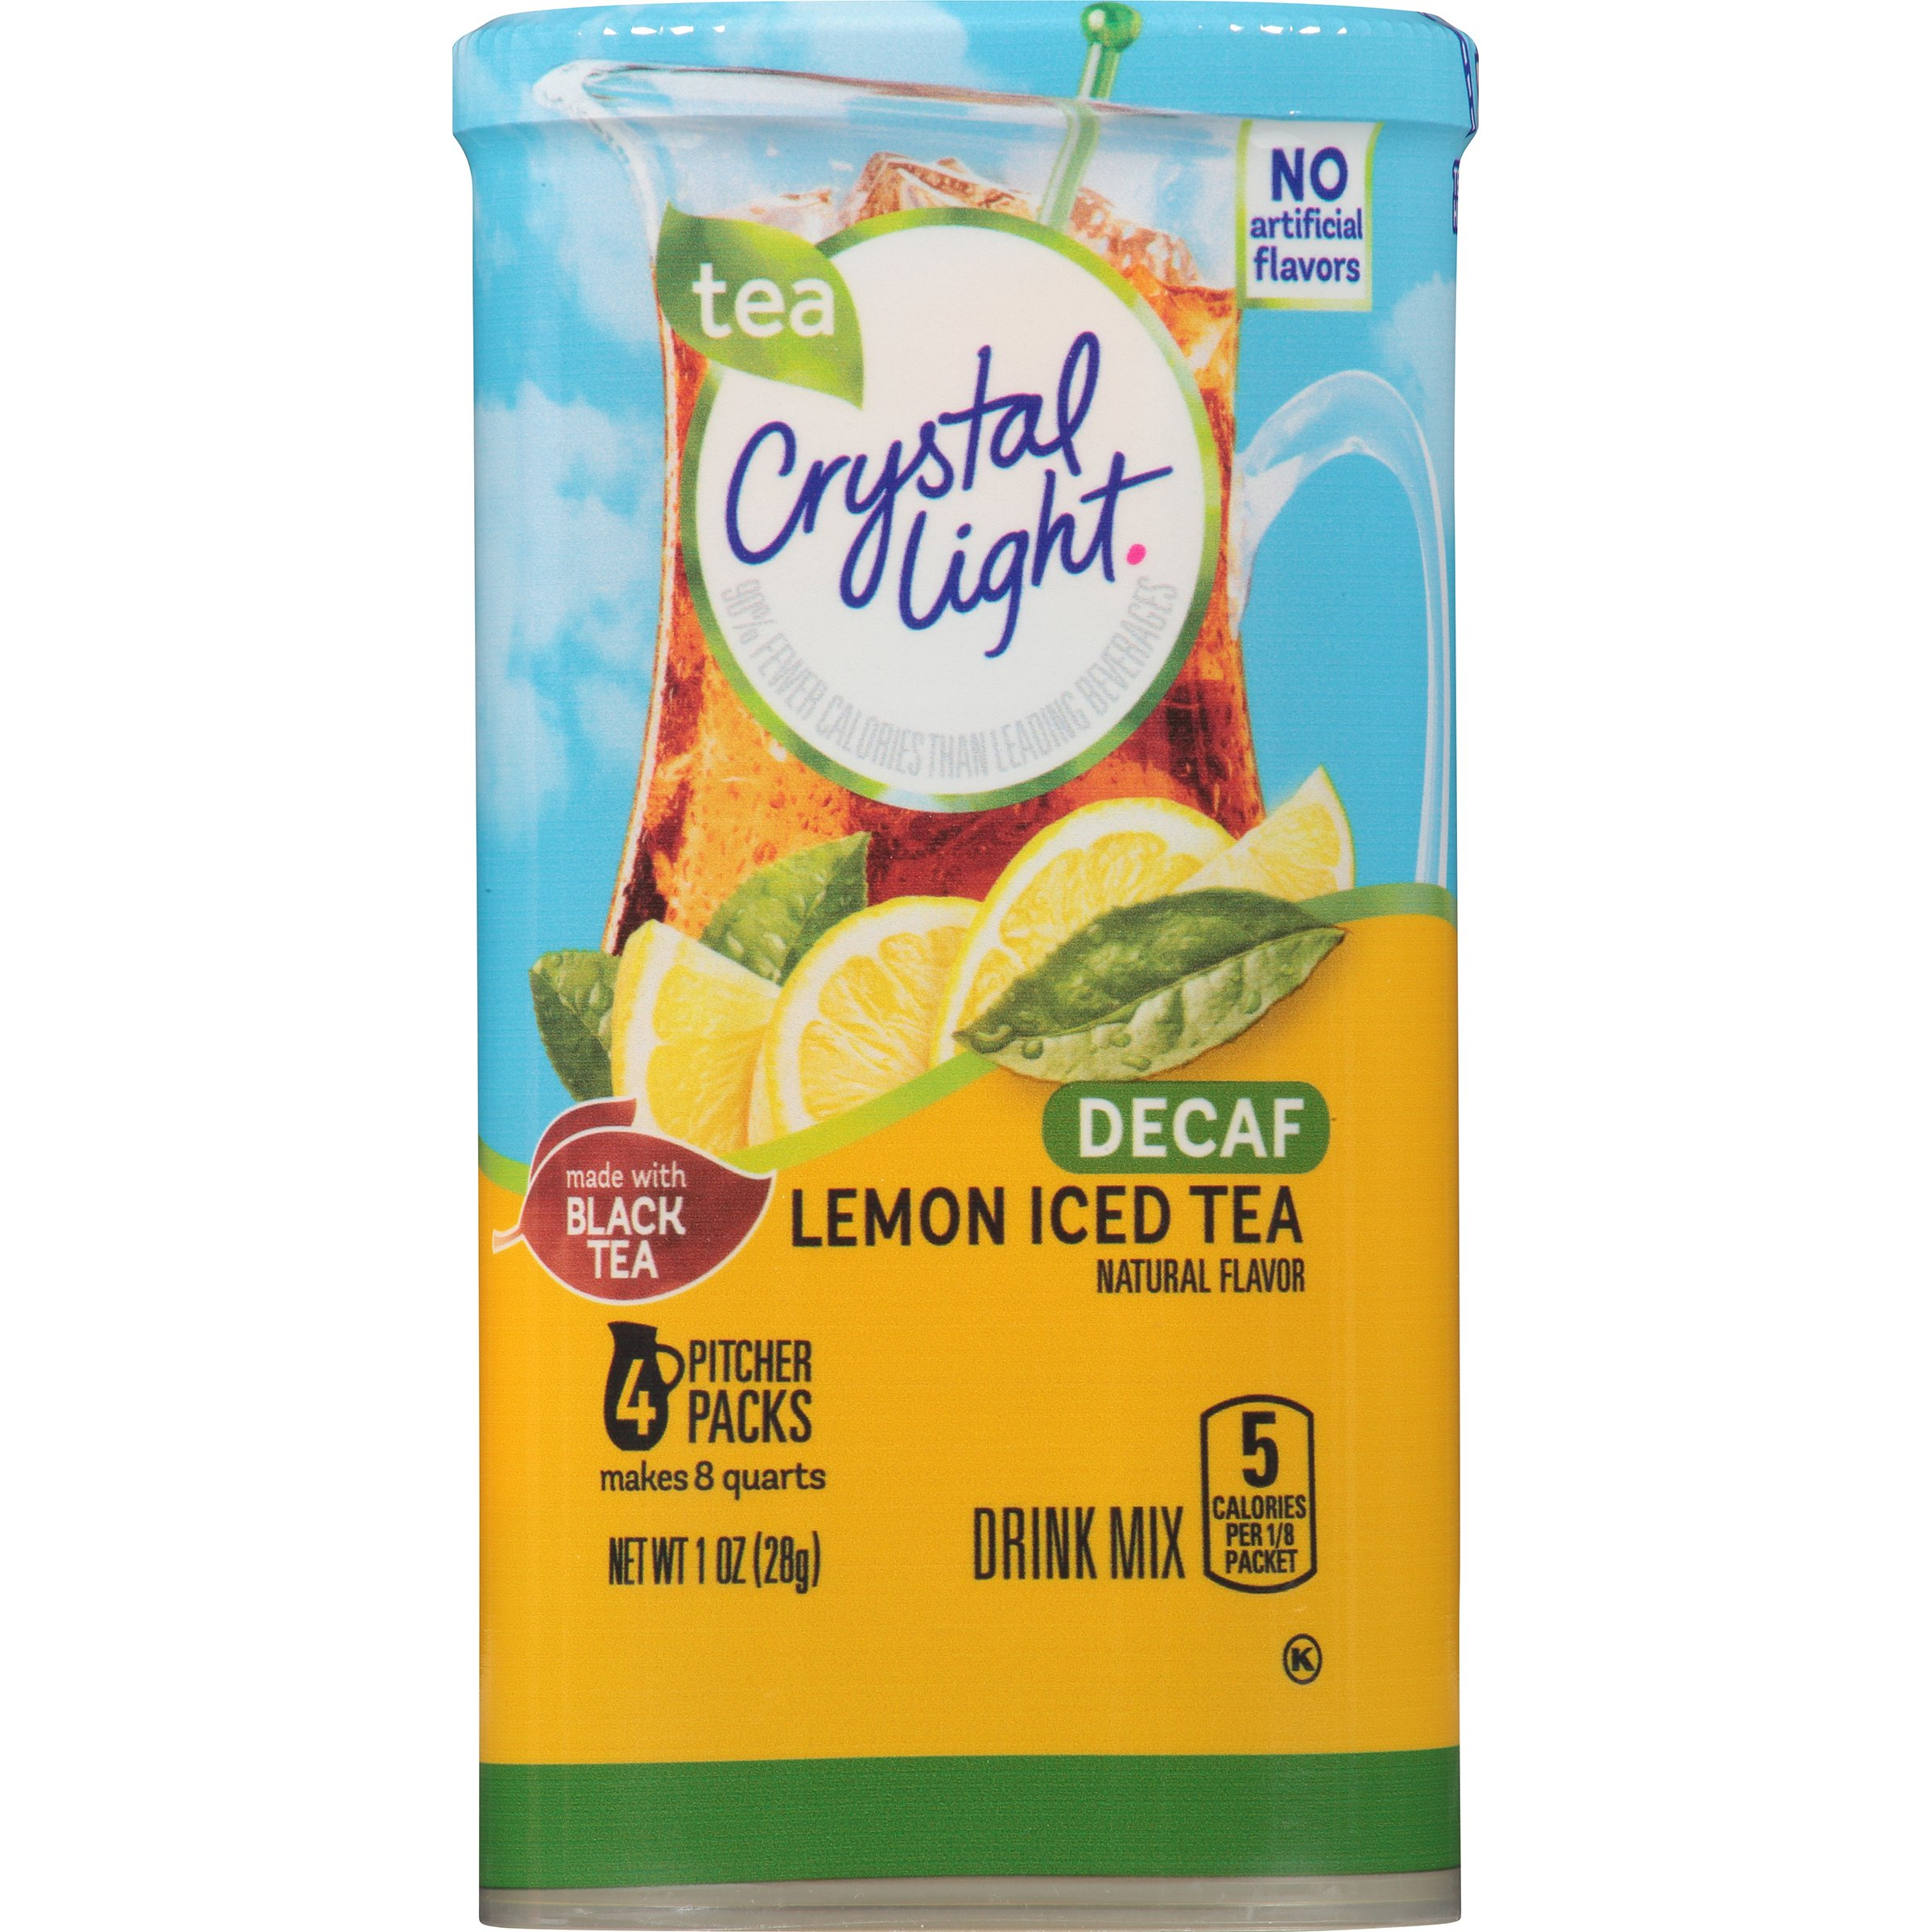 Crystal Light Decaf Lemon Iced Tea Drink Mix (48 Pitcher Packets, 12 Canisters of 4)